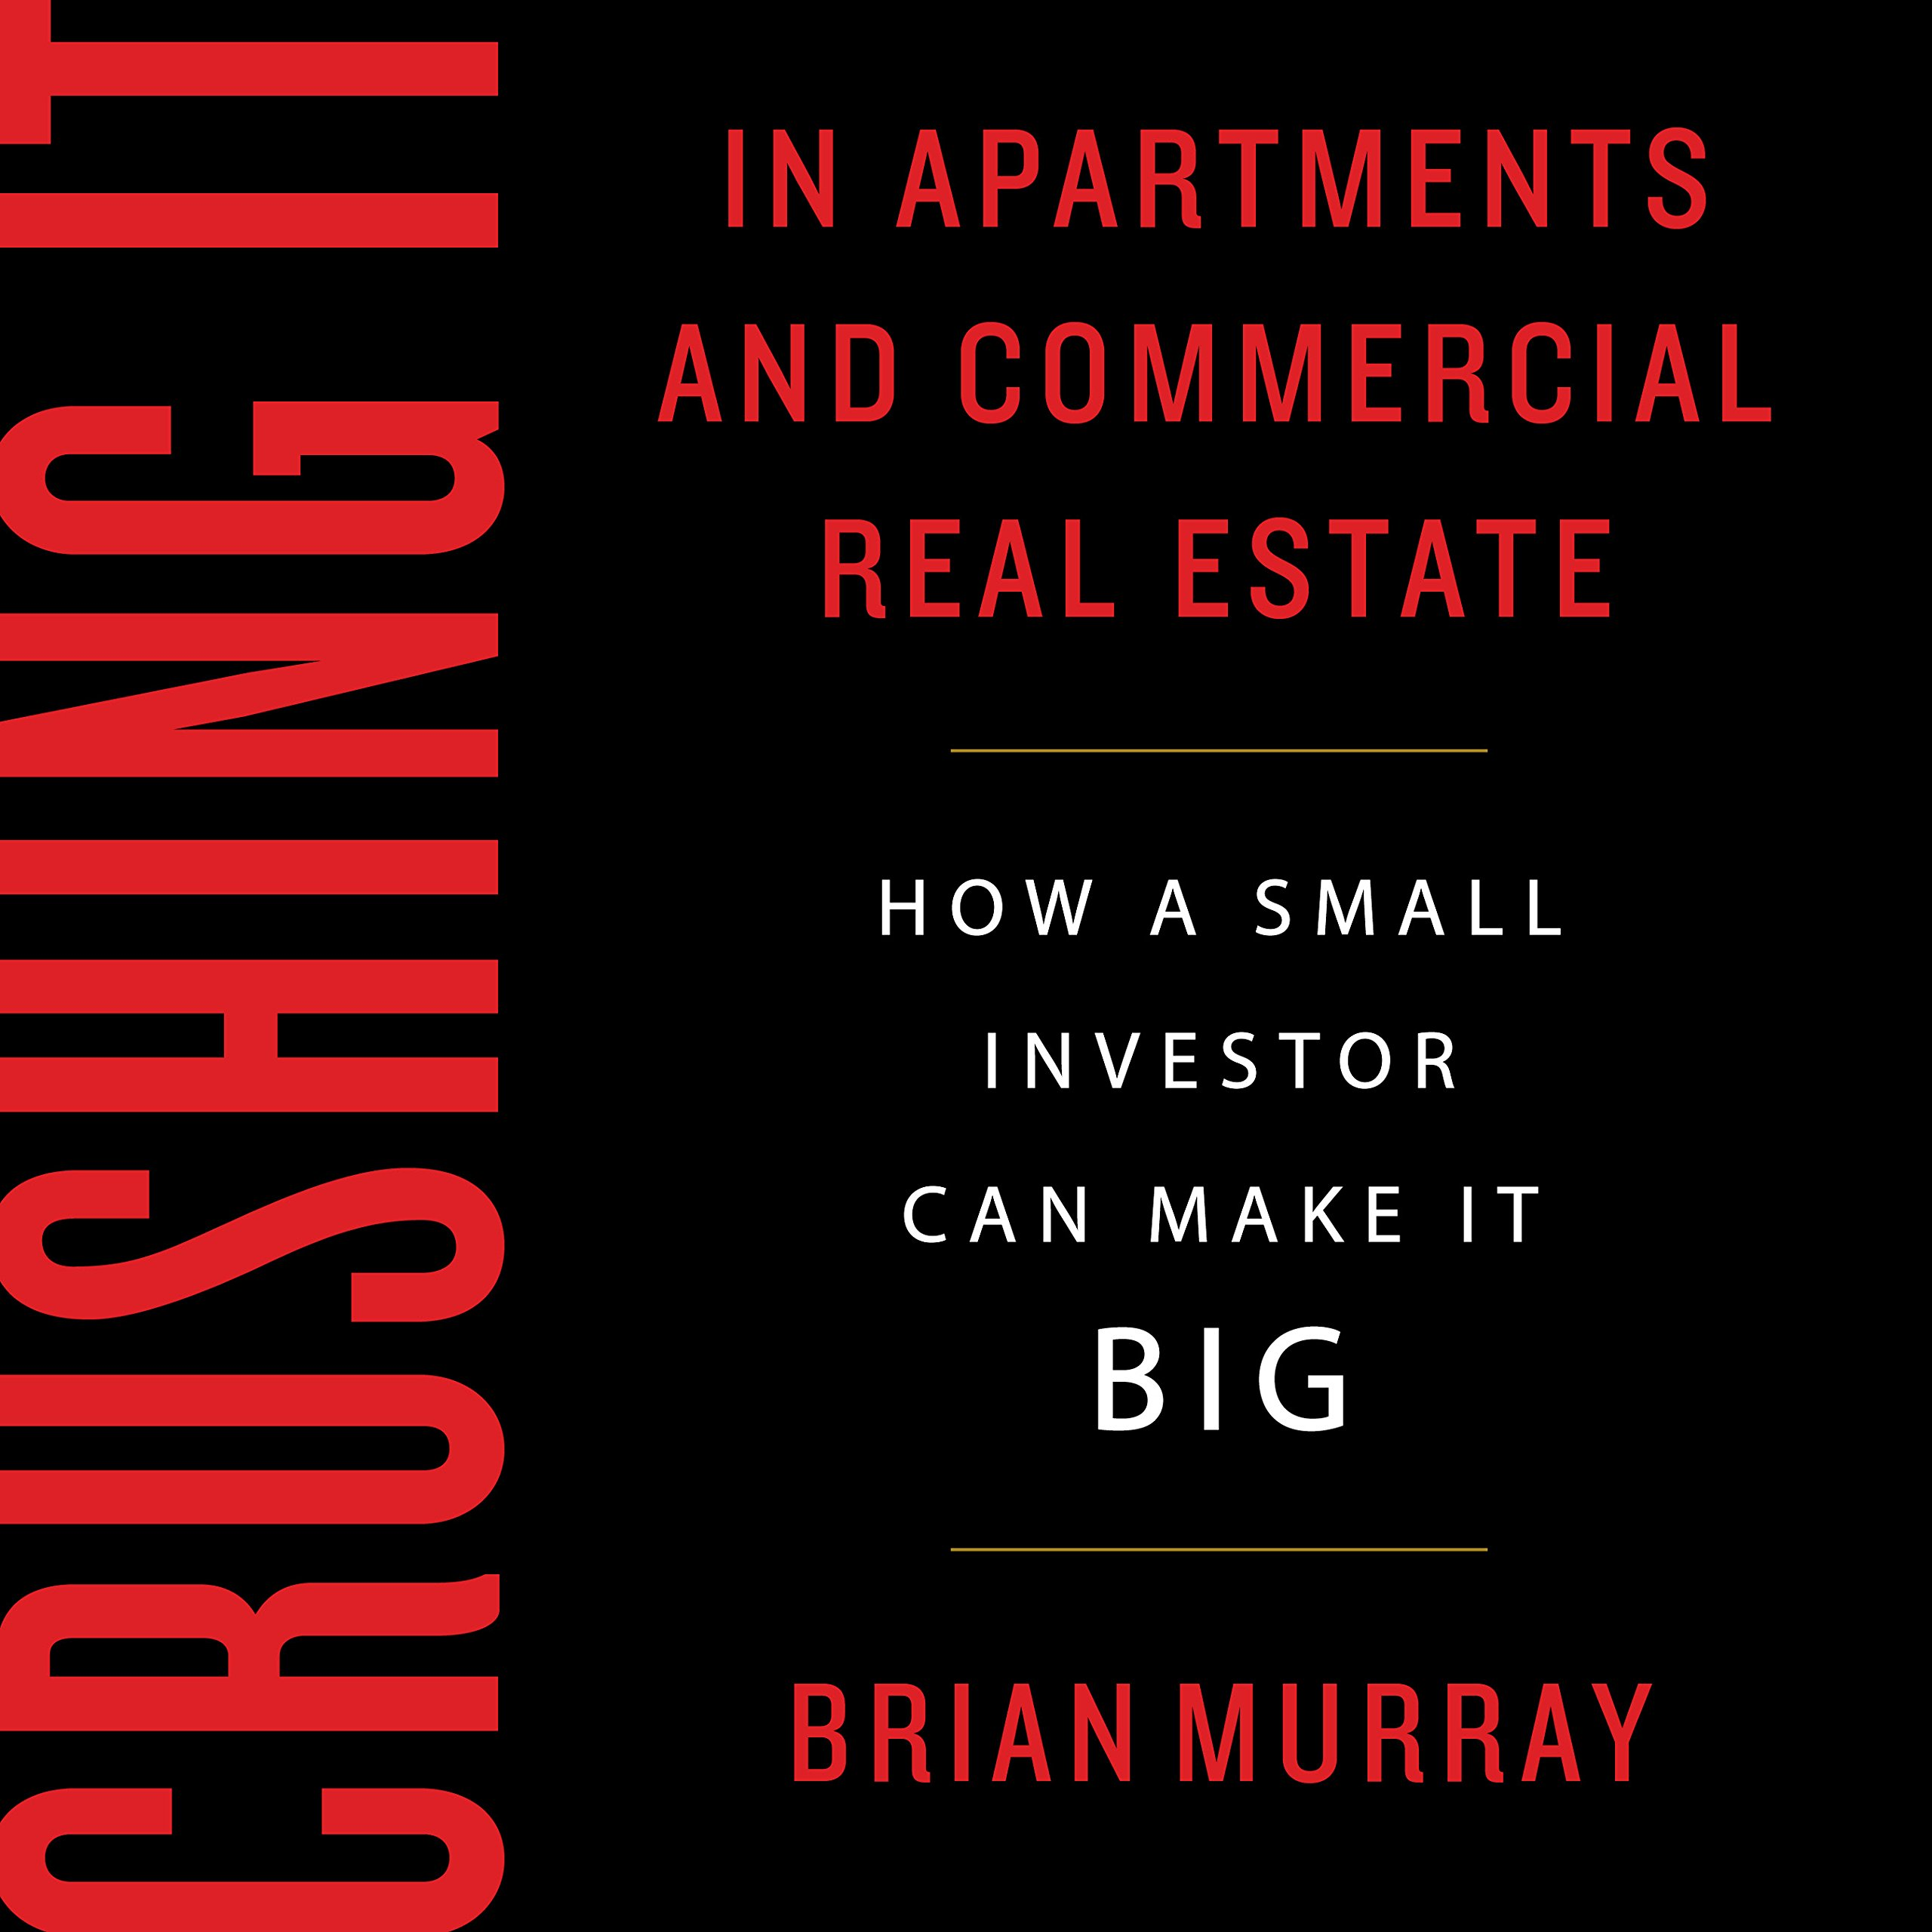 Crushing It in Apartments and Commercial Real Estate: How a Small Investor Can Make It Big